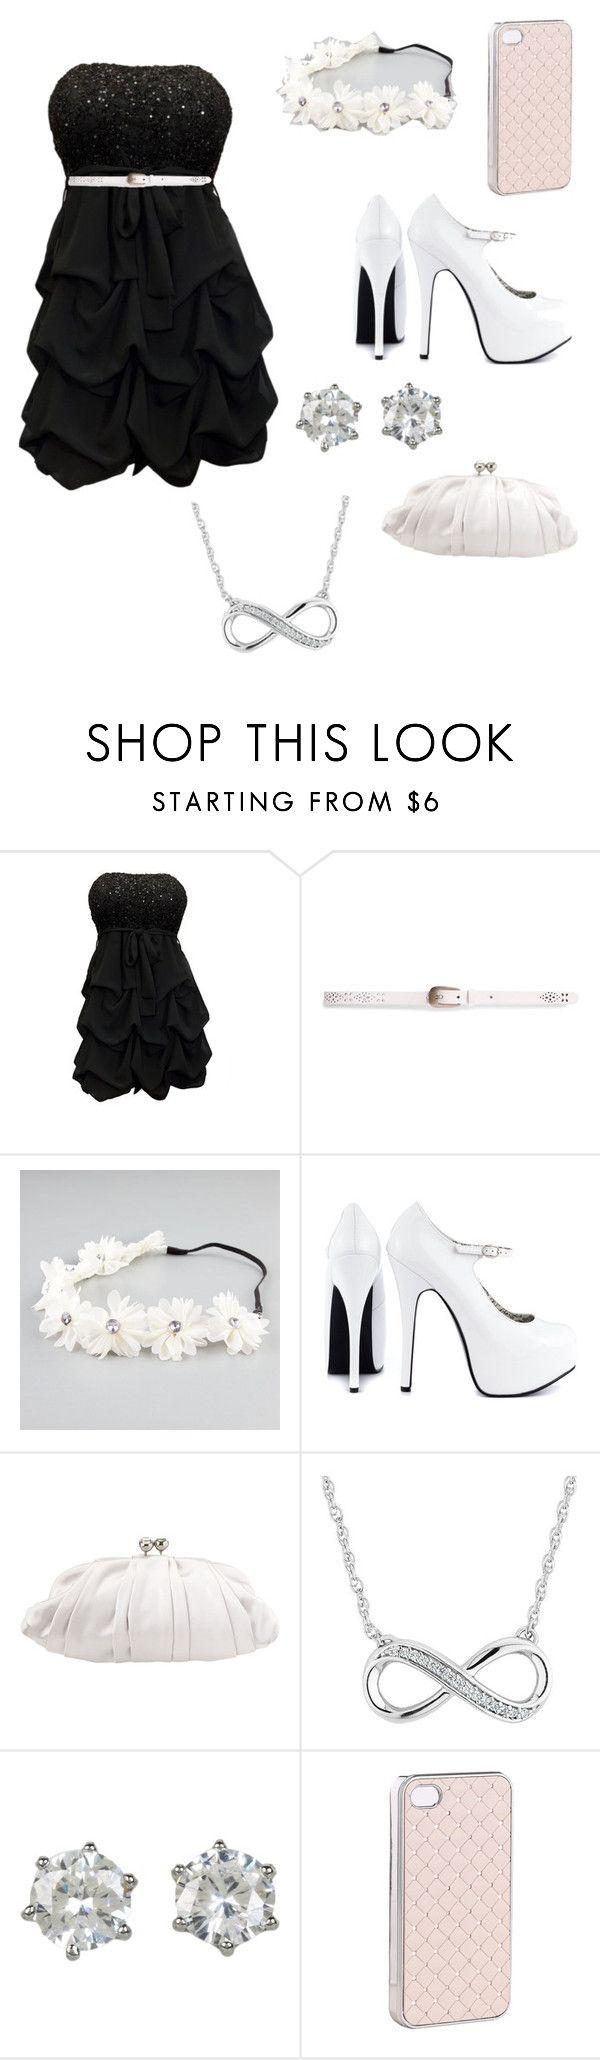 """""""end of the school's dance"""" by beautjful ❤ liked on Polyvore featuring Pull&Bear, Full Tilt, Viva Bordello, Nine West, Reeds Jewelers, Juicy Couture and Accessorize"""